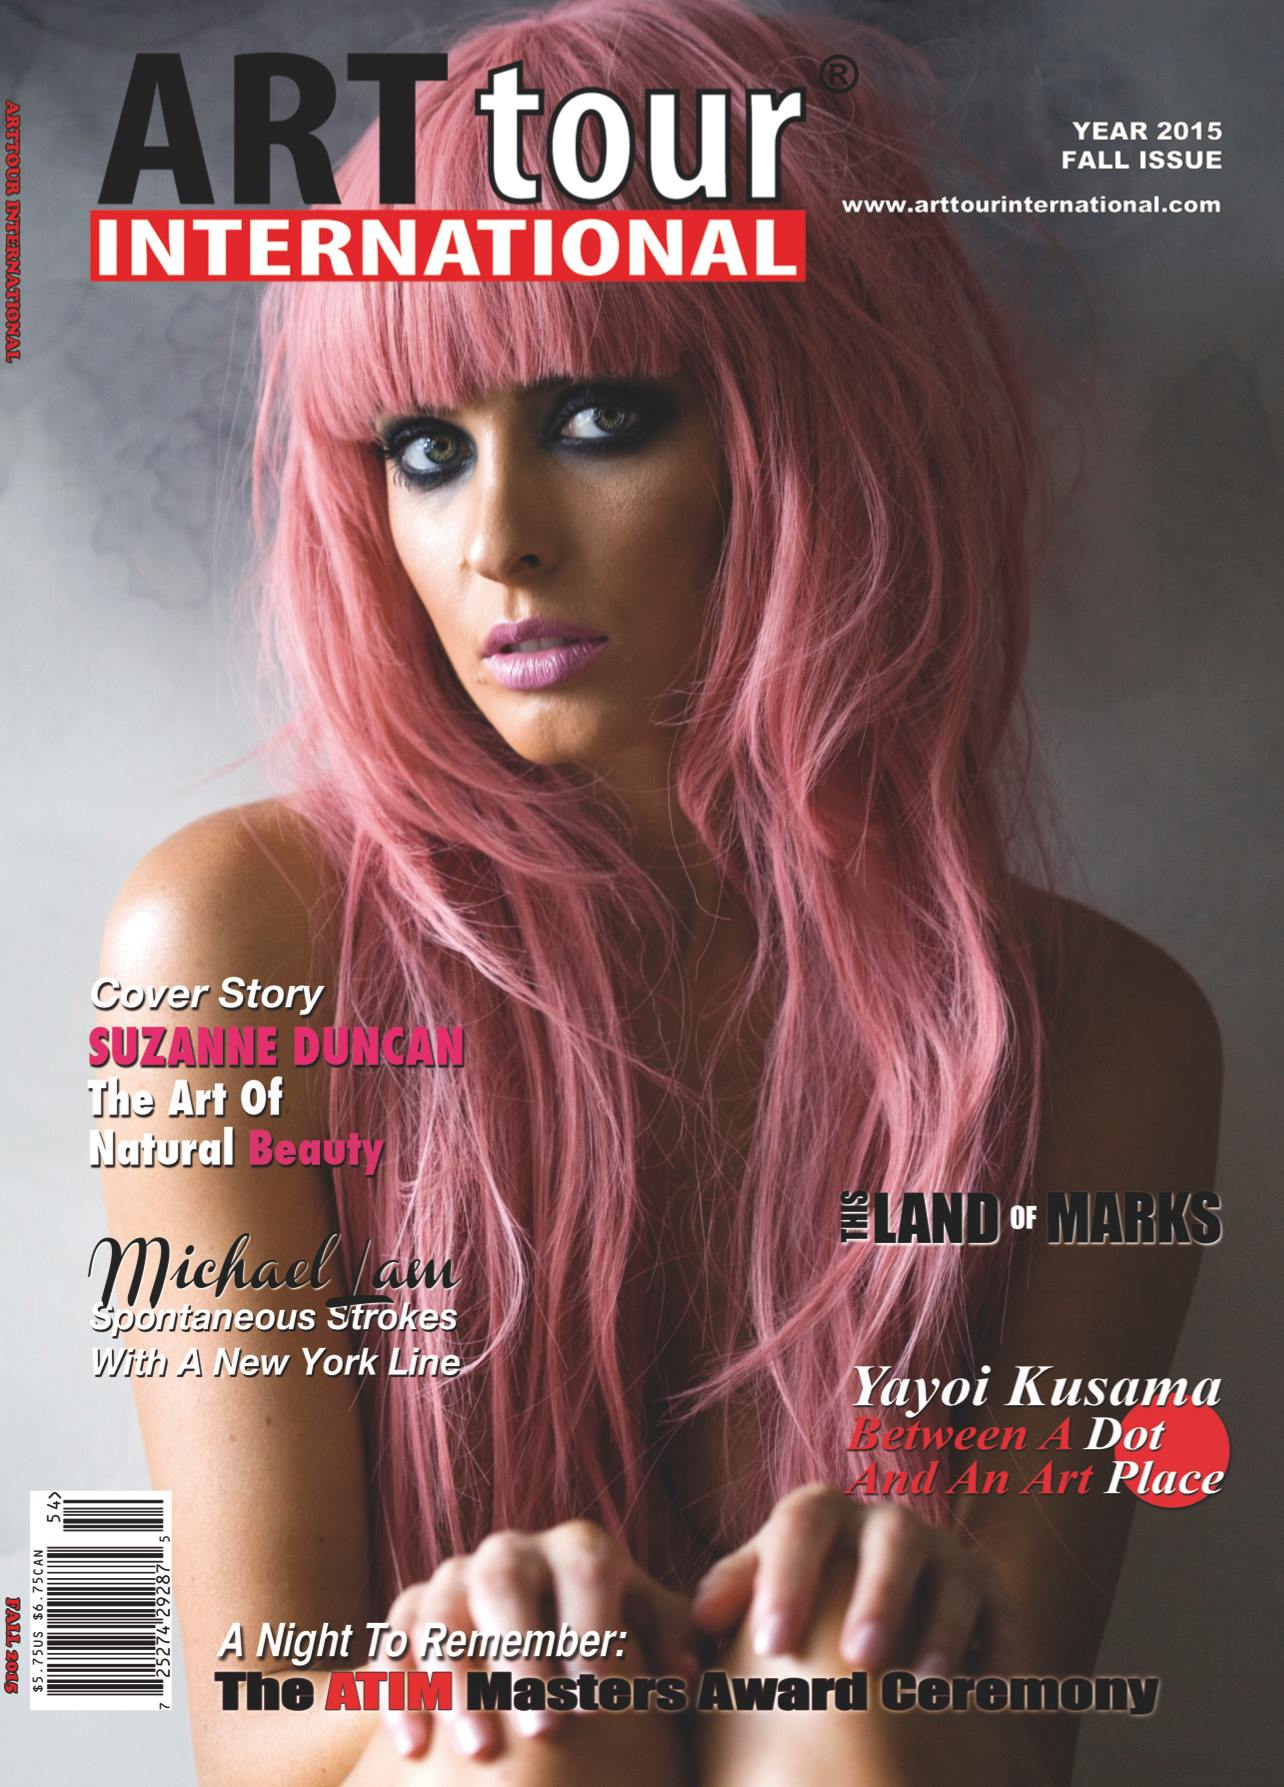 Pink Hair Front Cover.jpg